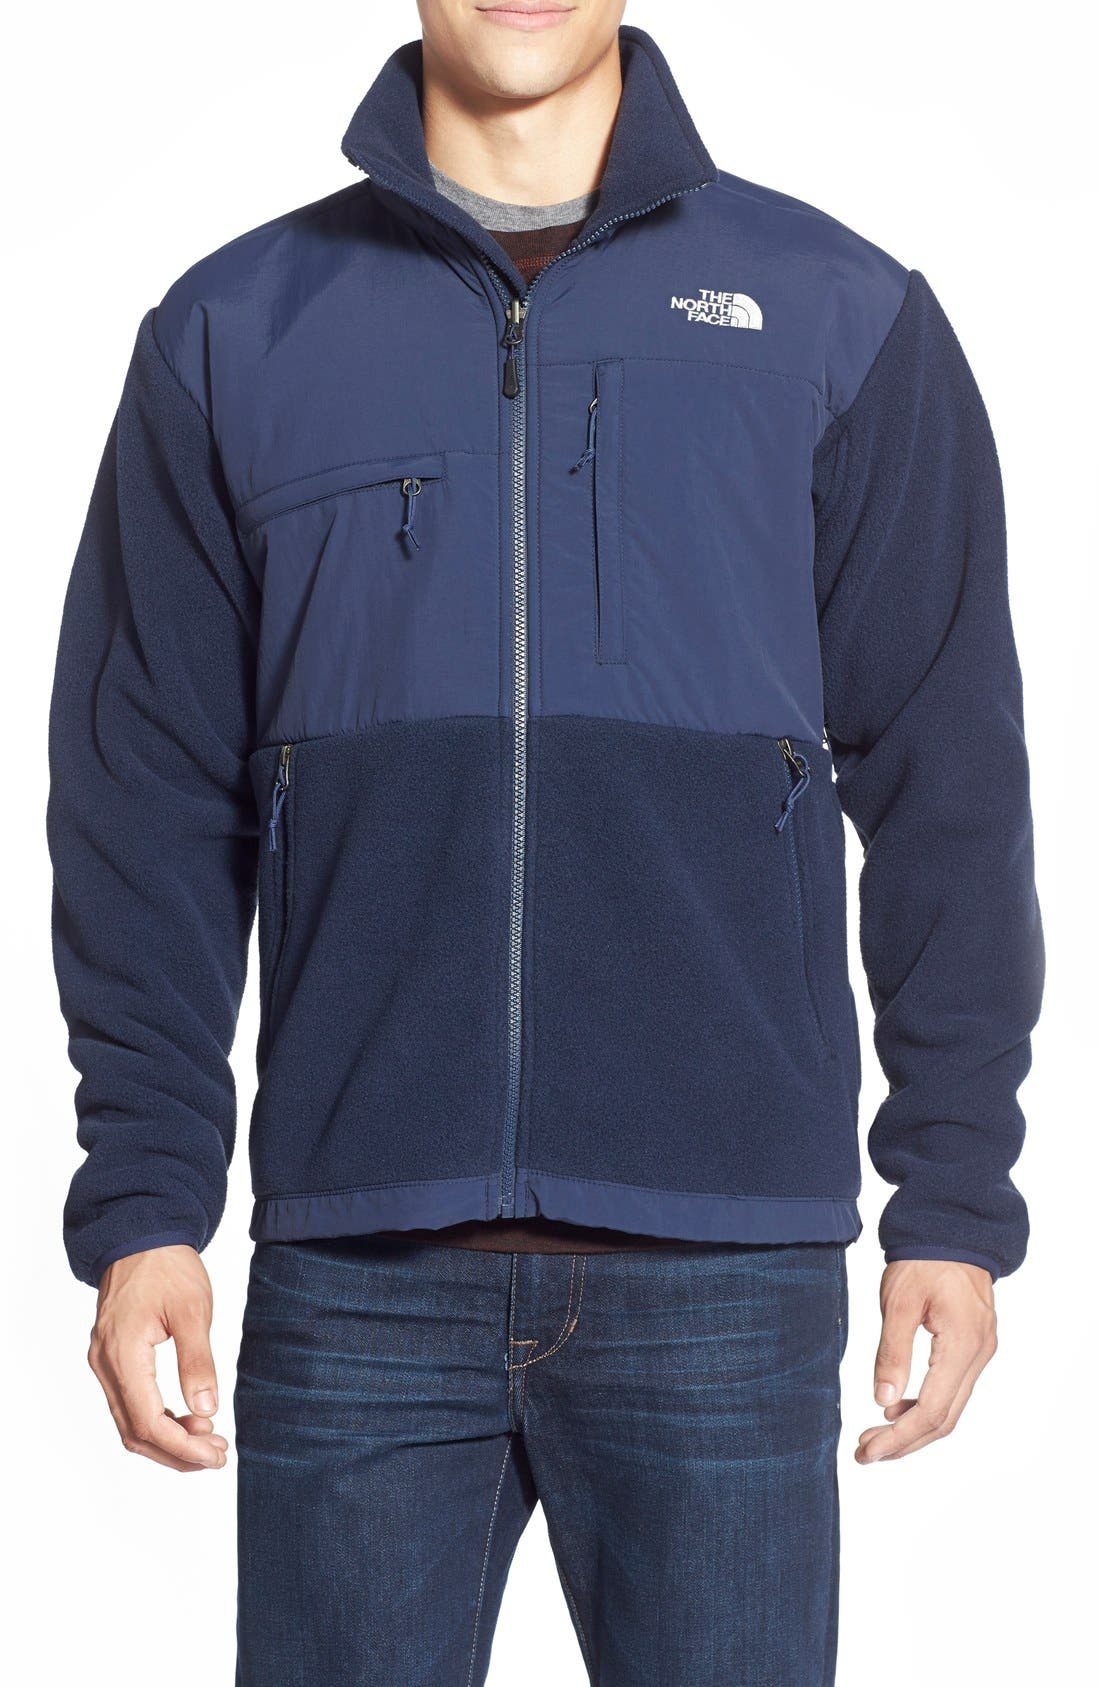 Alternate Image 1 Selected - The North Face 'Denali' Recycled Polartec 300® Fleece Jacket